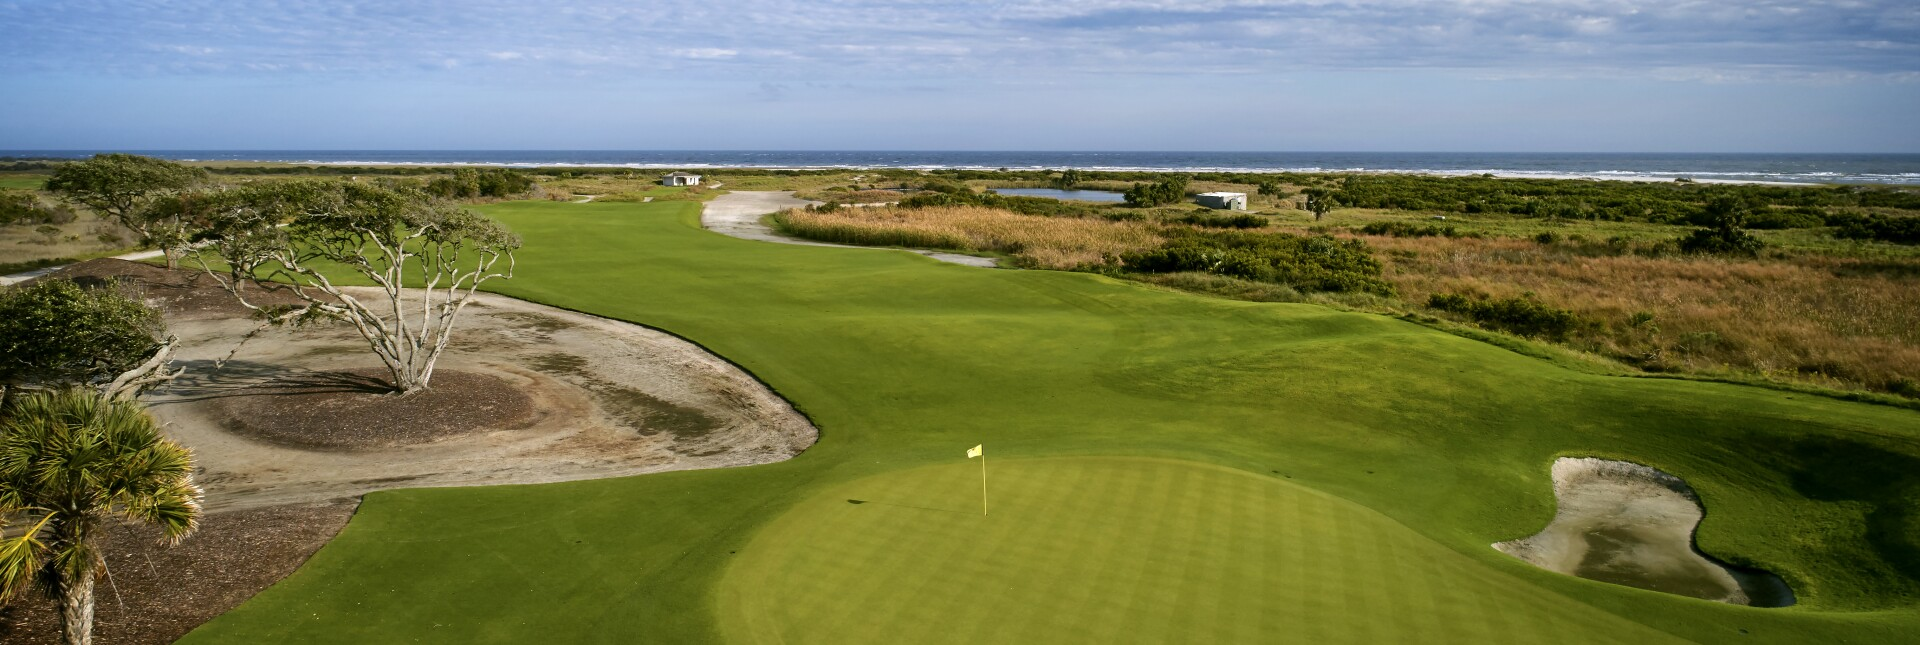 The sixth hole at the Ocean Course at Kiawah Island Golf Resort